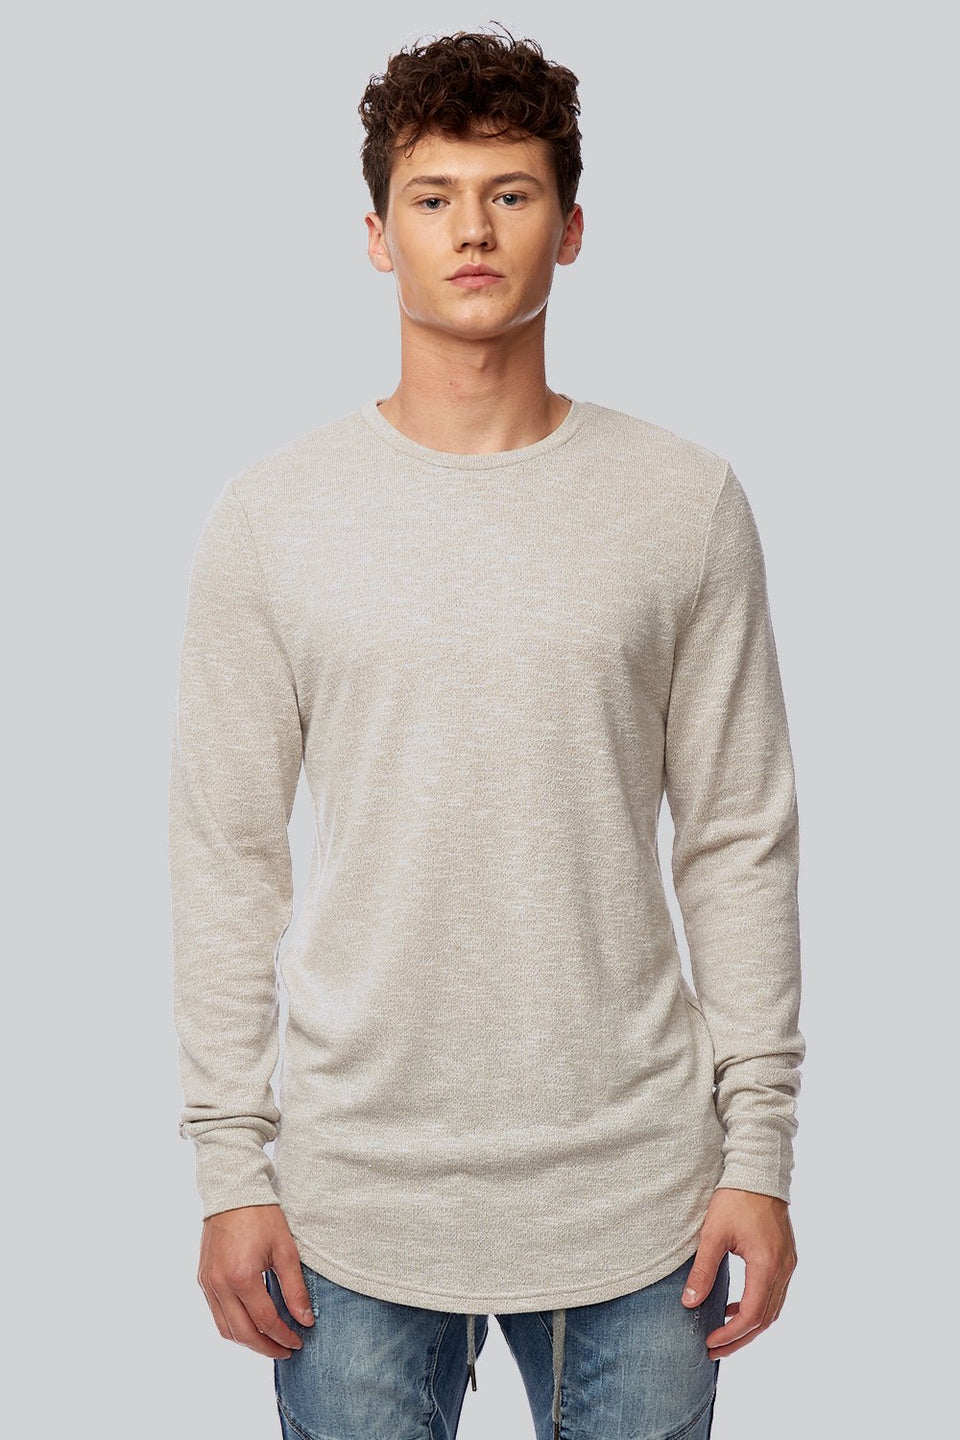 Uppercut Sweater KUL-LST1010 Tan